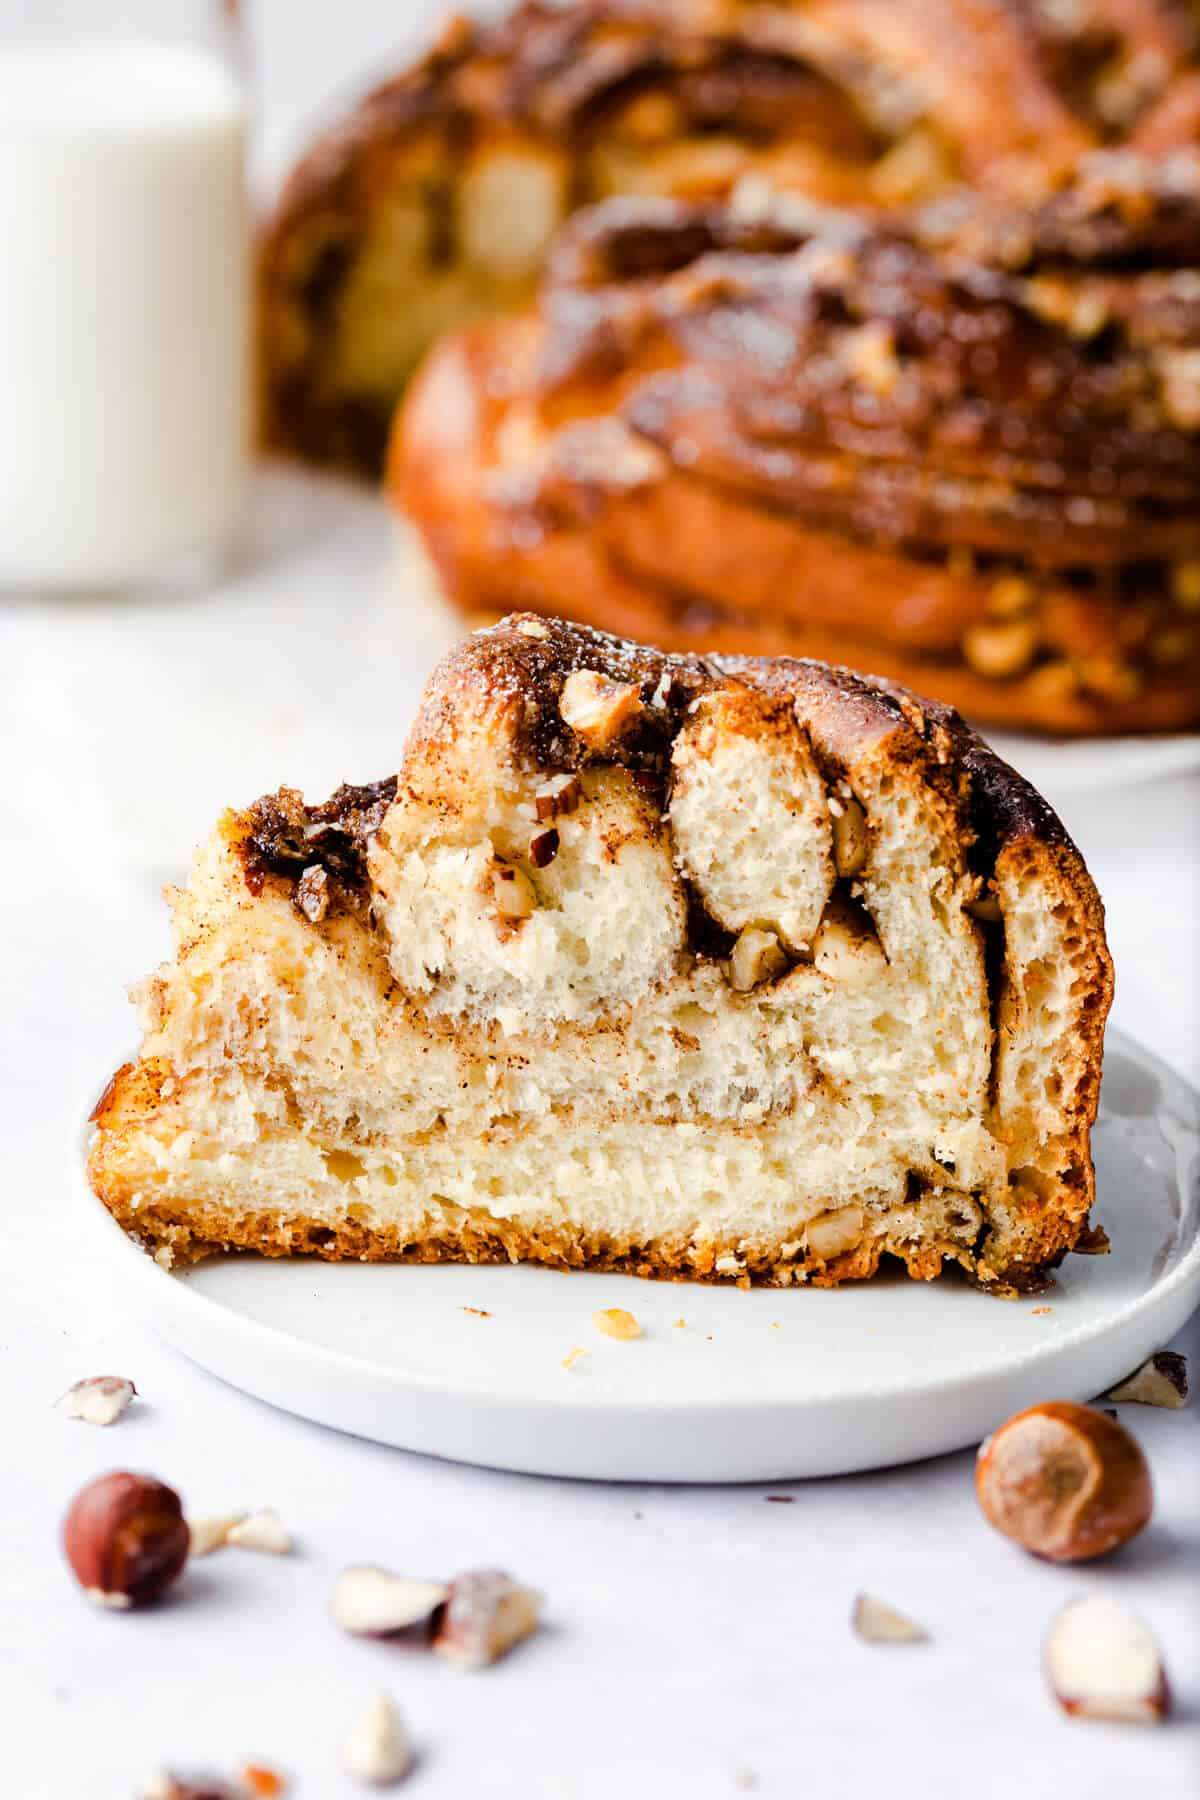 side super close up of a slice of cinnamon and hazelnut bread on a small plate